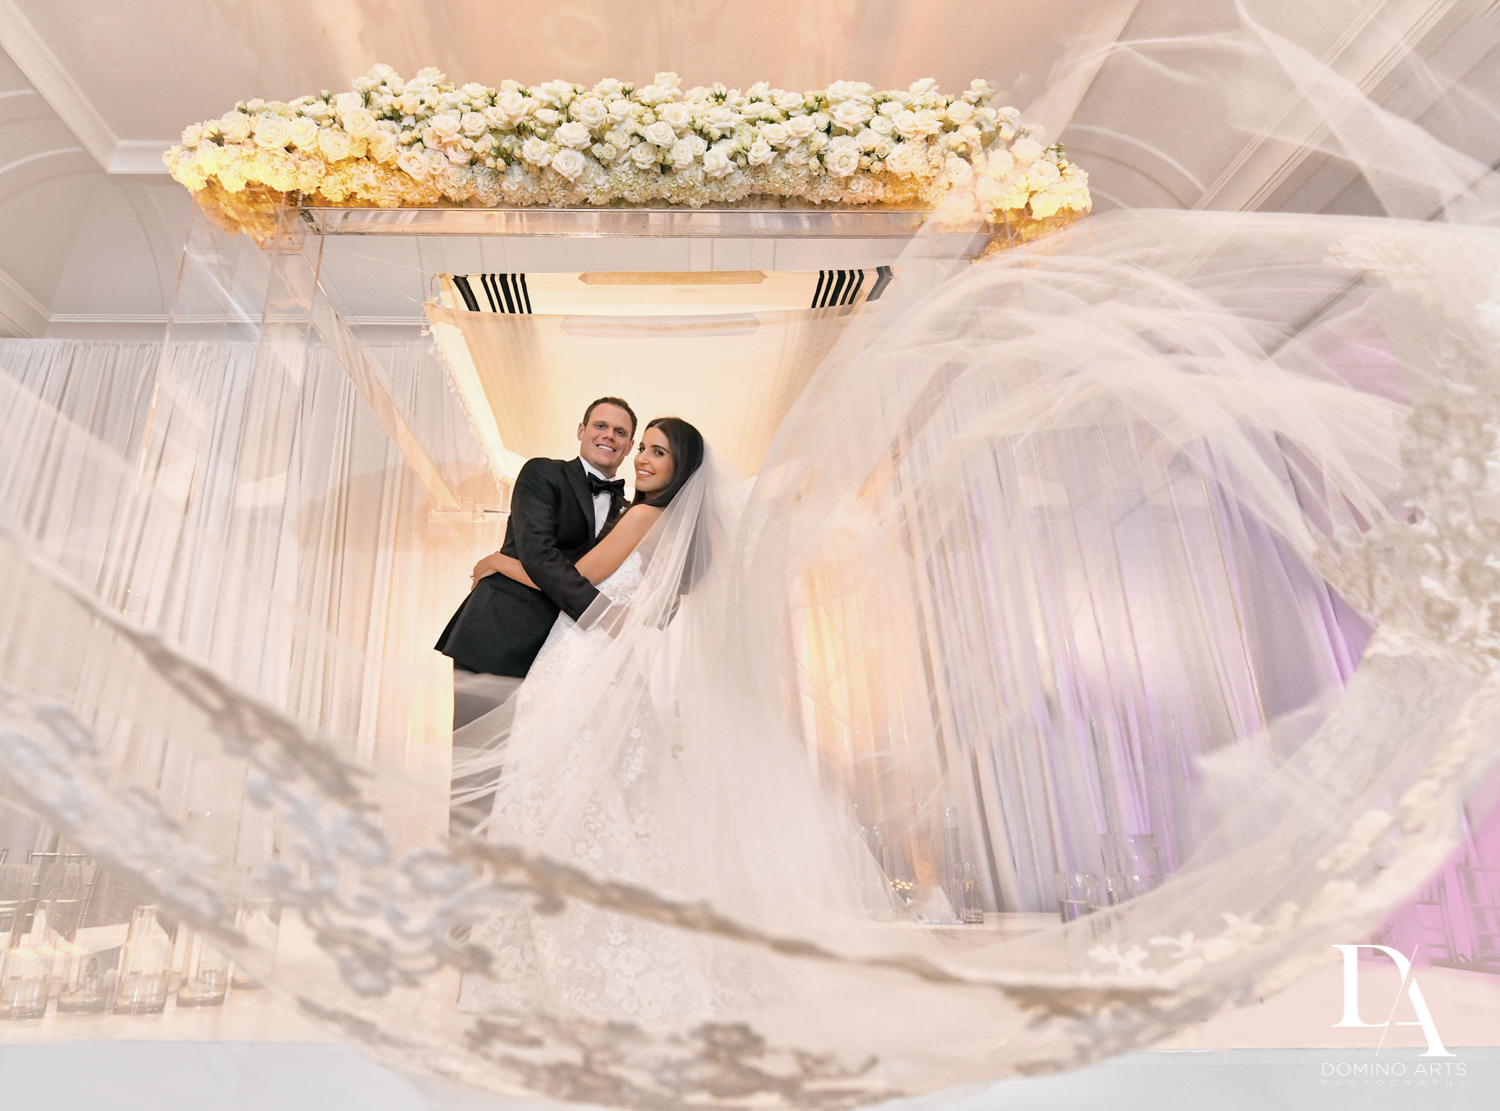 floral chuppah at A Ritz Carlton Wedding in Key Biscayne by Domino Arts Photography